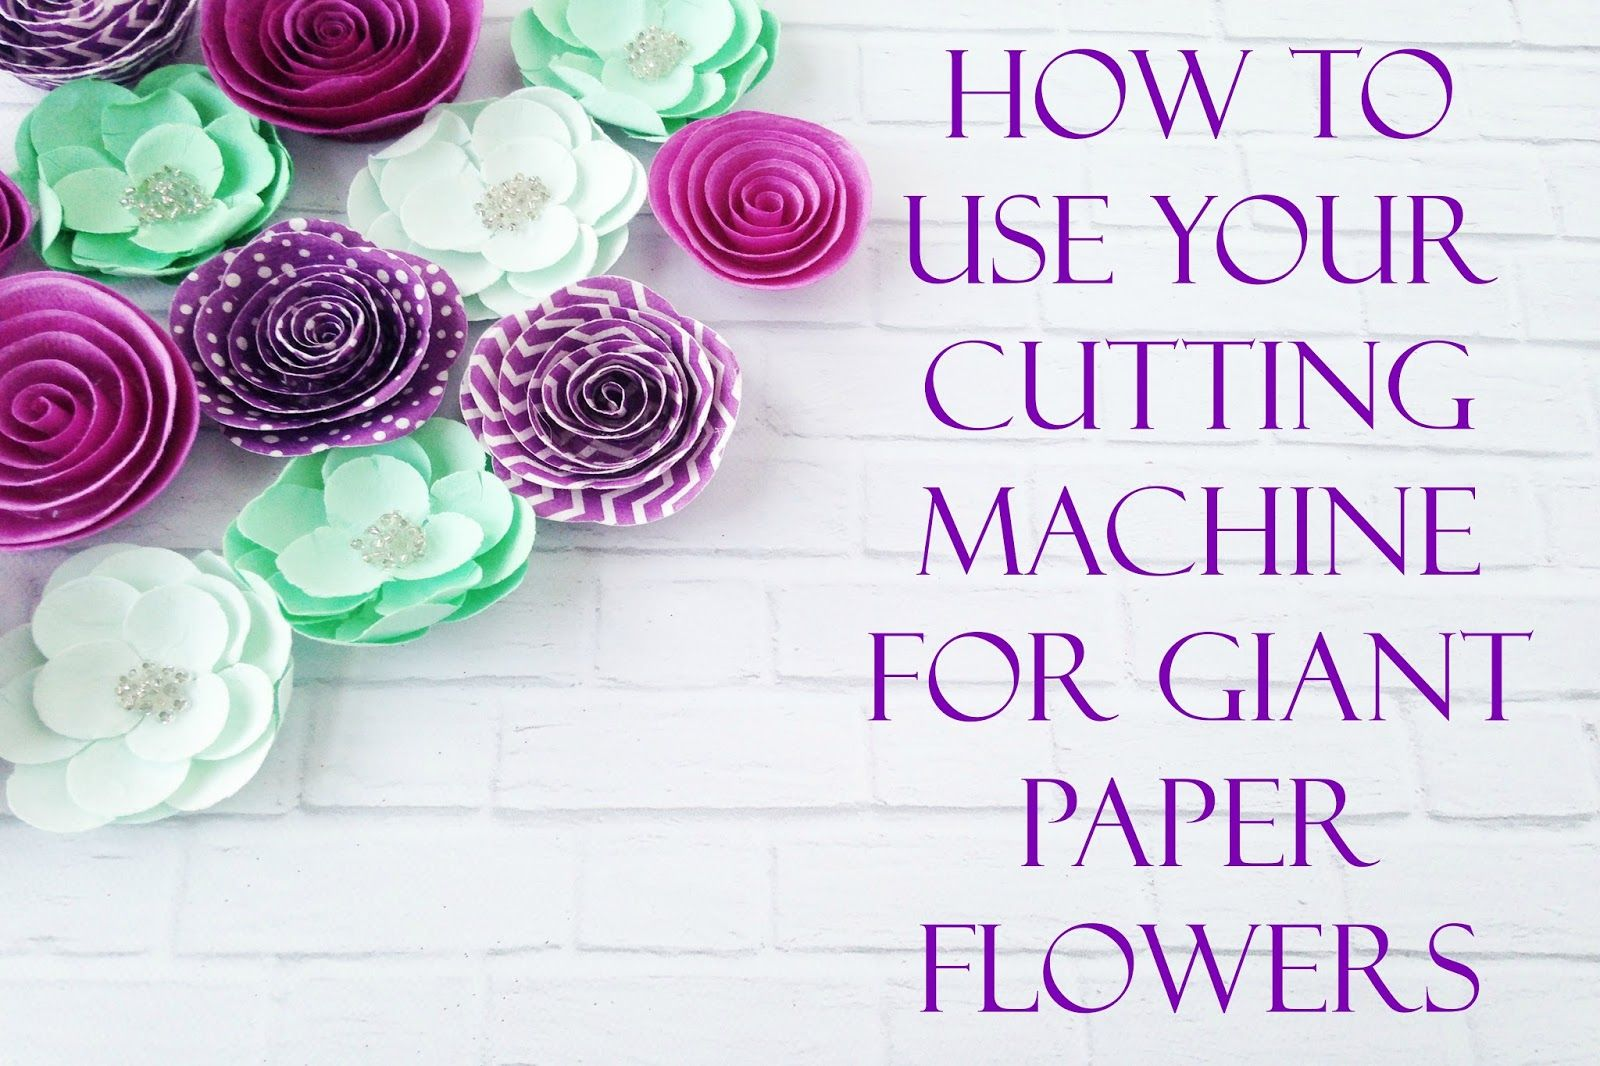 how to upload a svg to cricut design space and layout giant flower templates for cutting. Black Bedroom Furniture Sets. Home Design Ideas